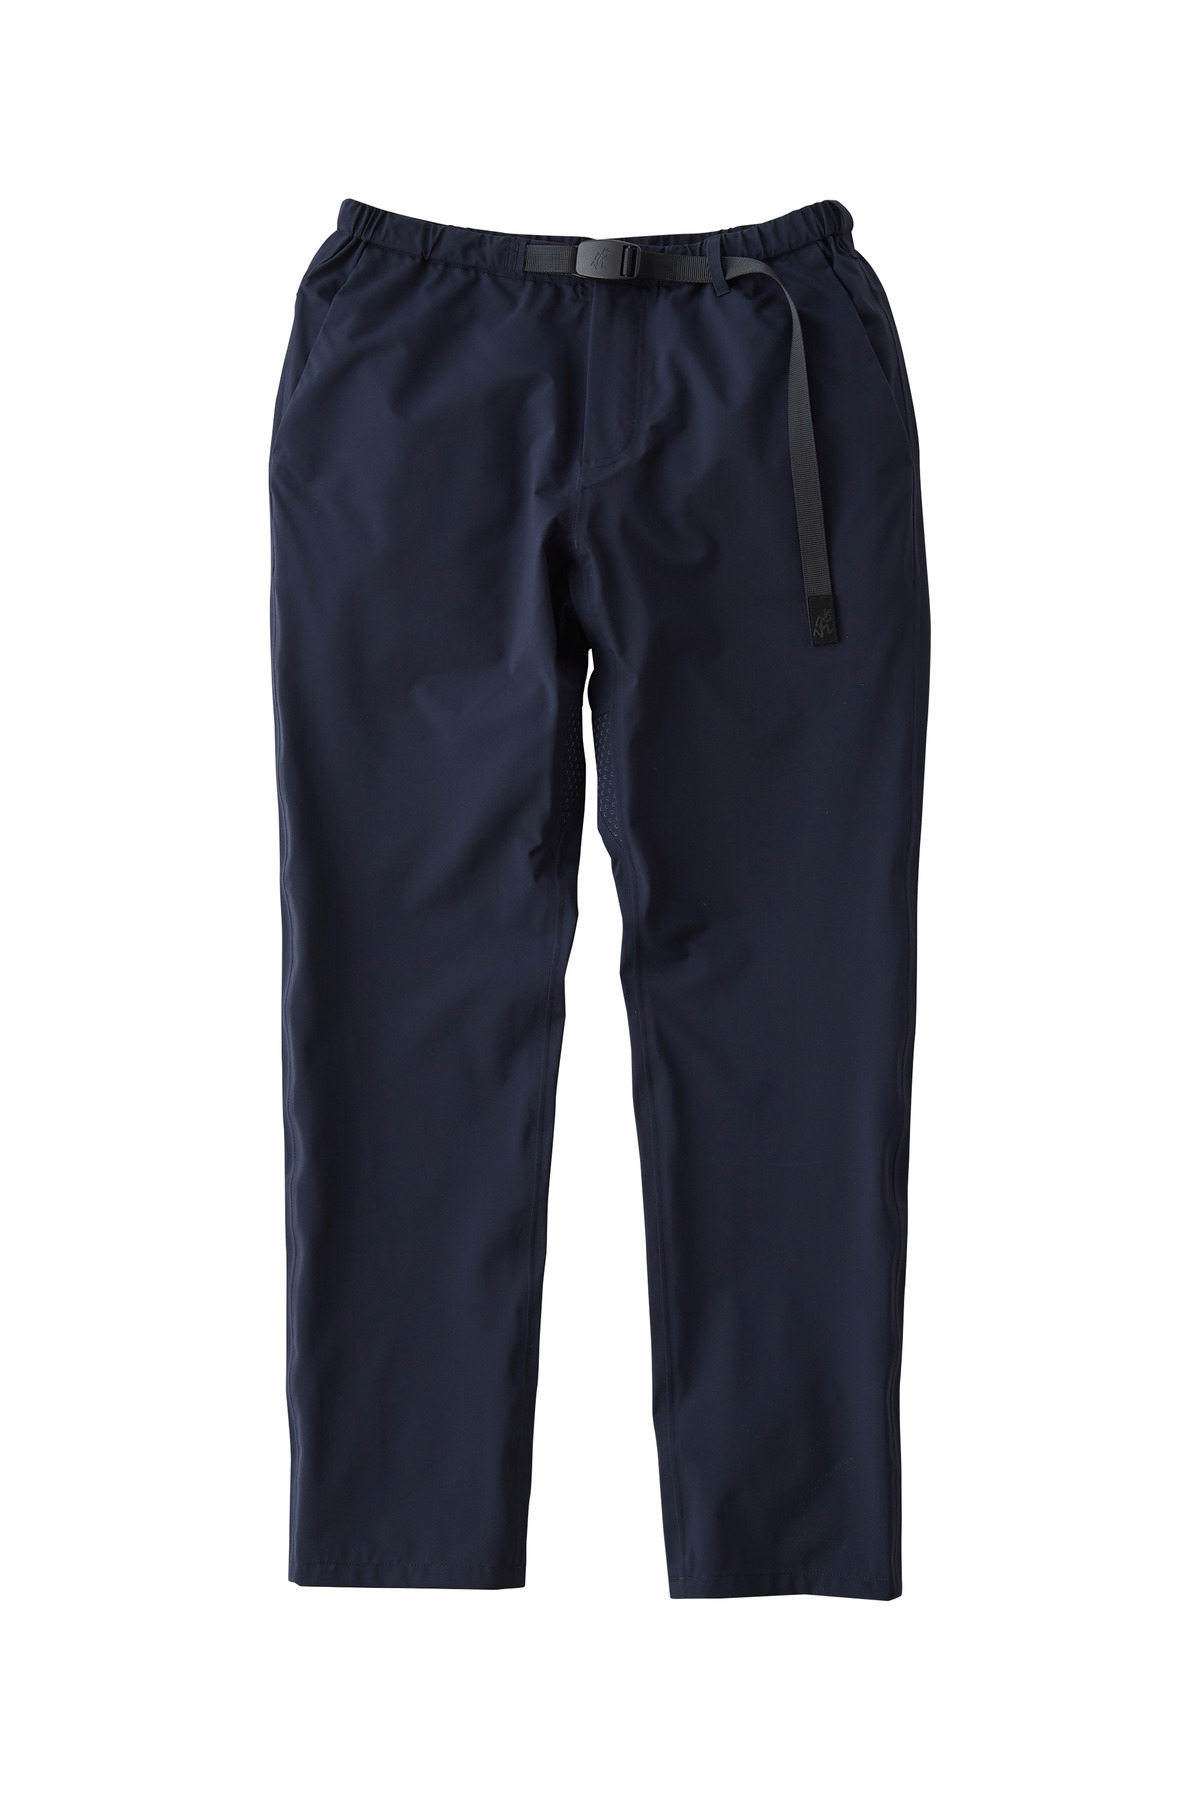 3LAYER REDROCK PANTS DOUBLE NAVY